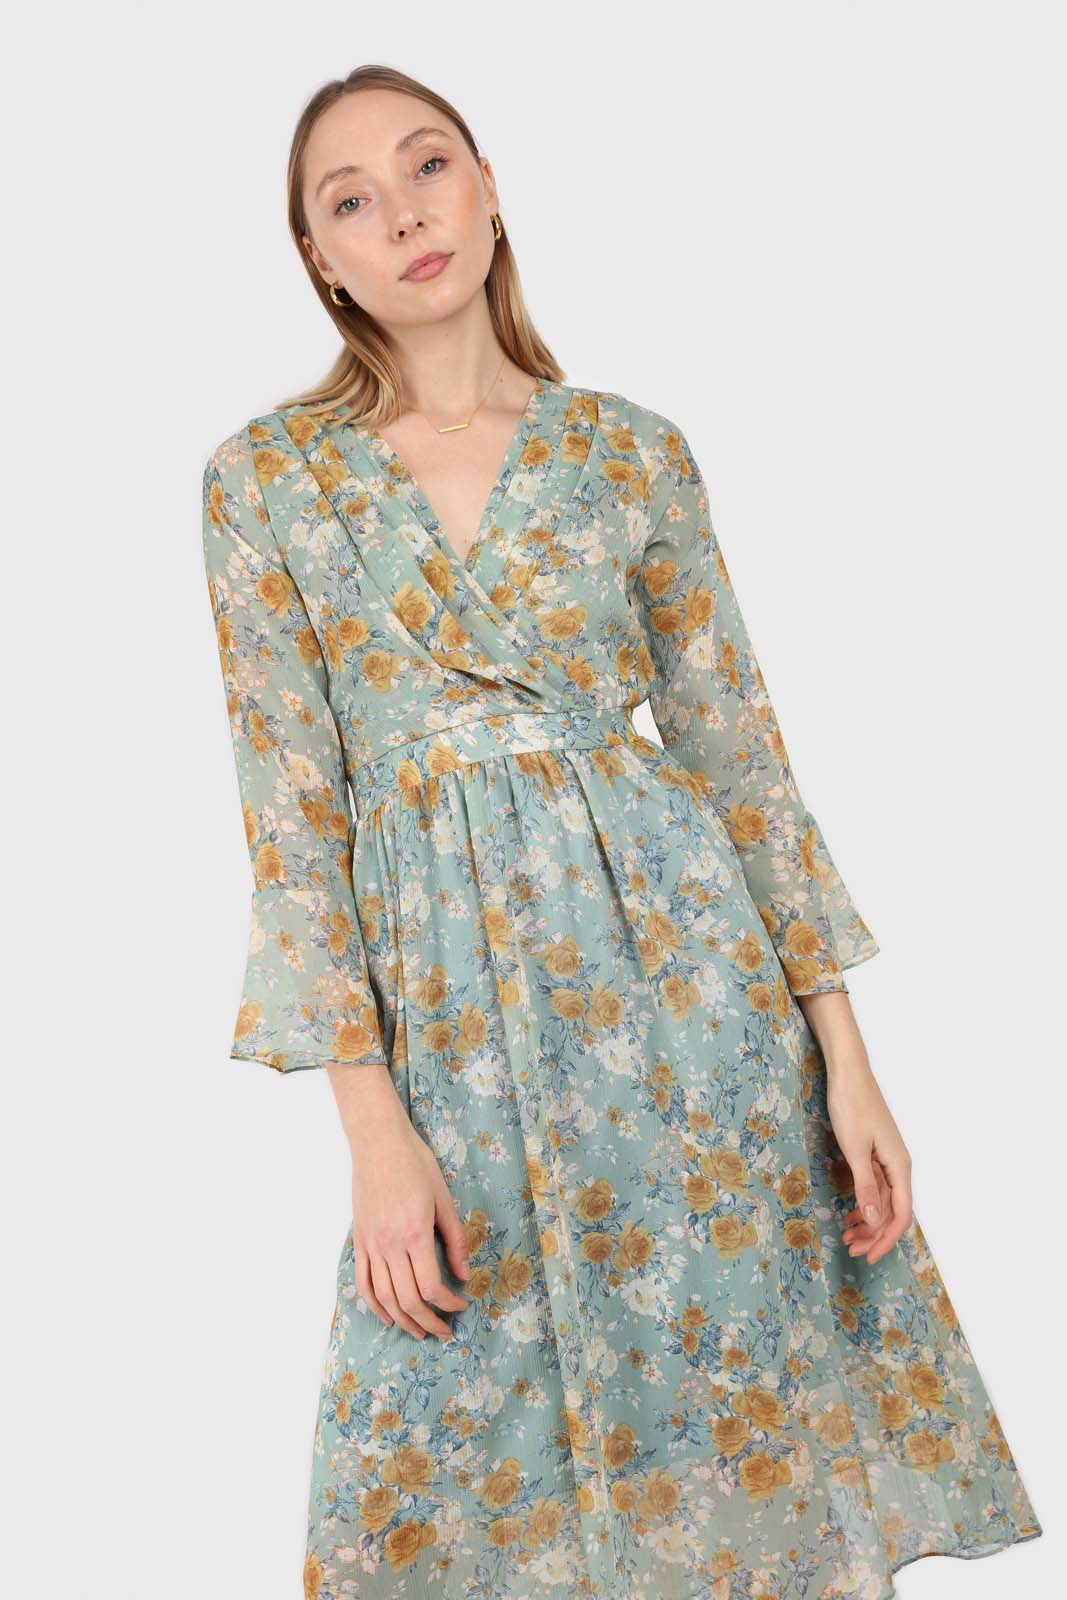 Light blue and mustard floral print layered V dress2